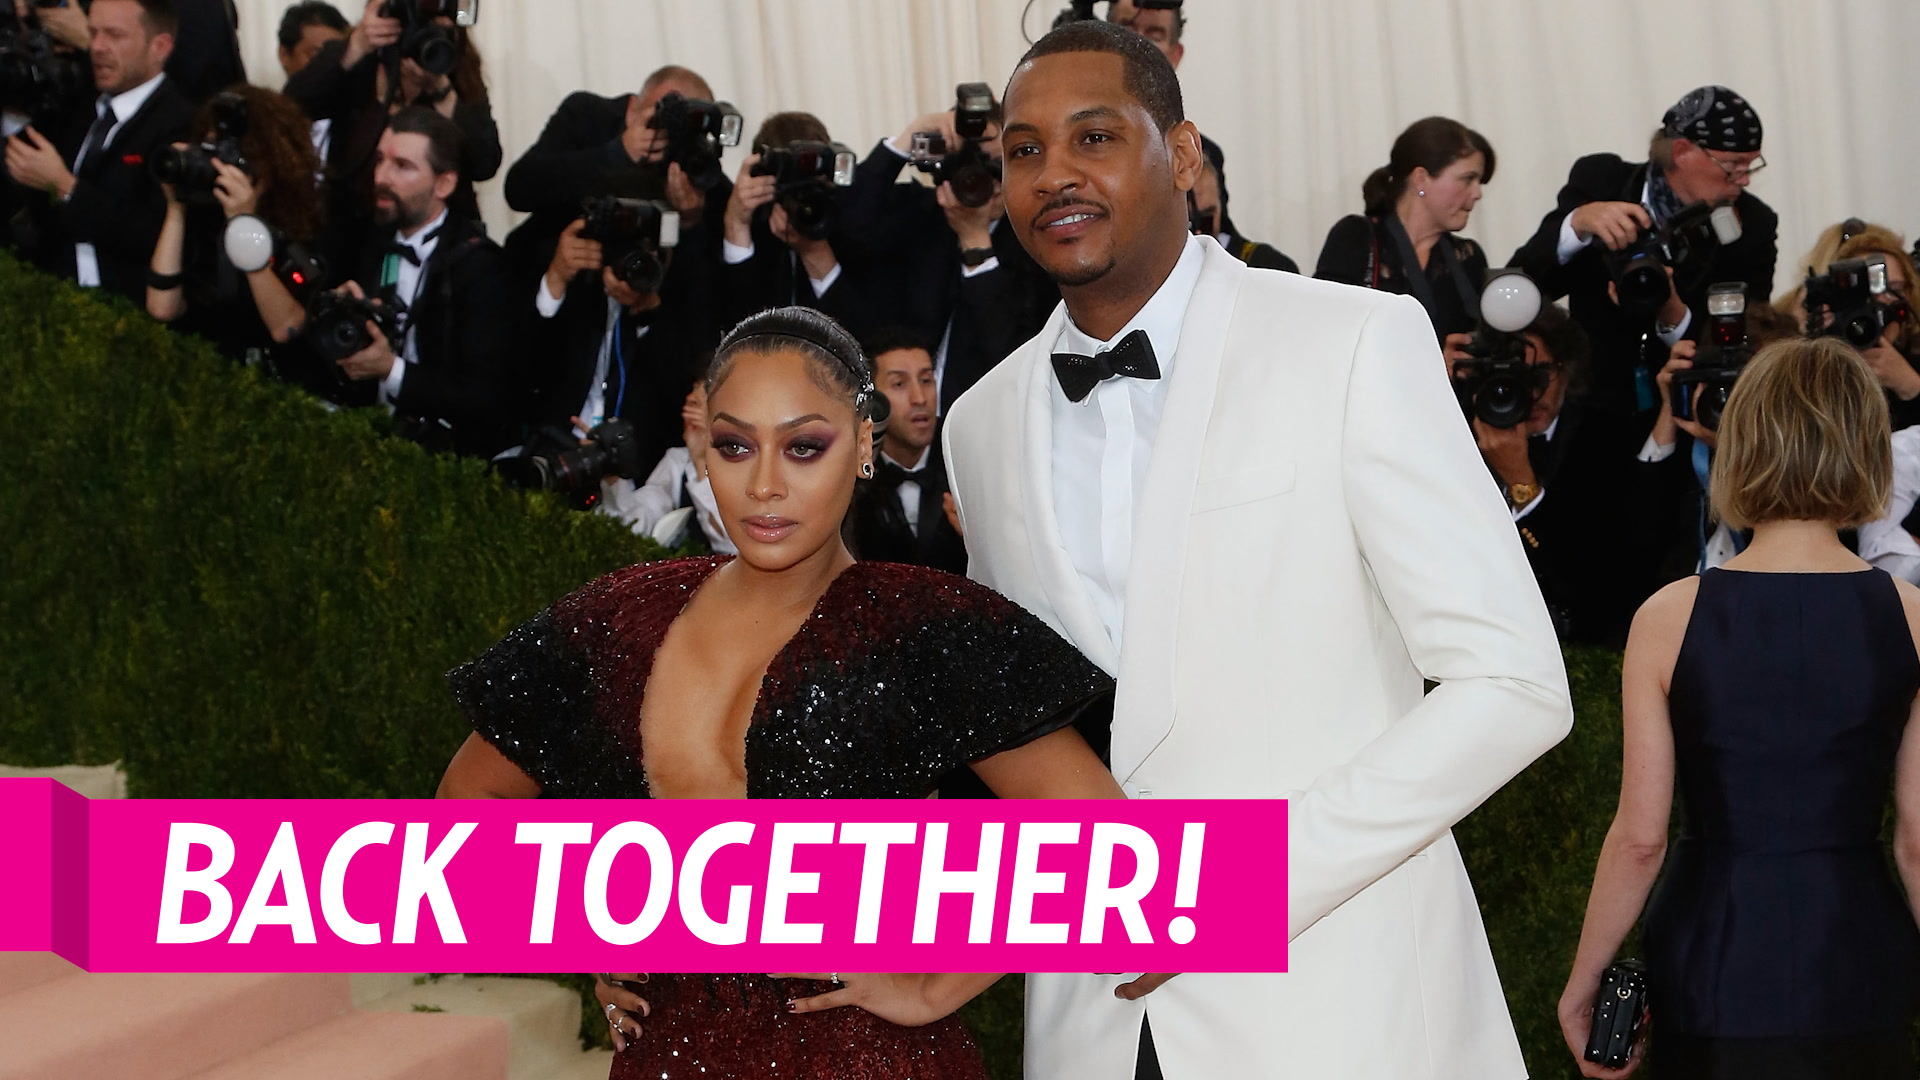 La La Anthony and Carmelo Anthony are Back Together